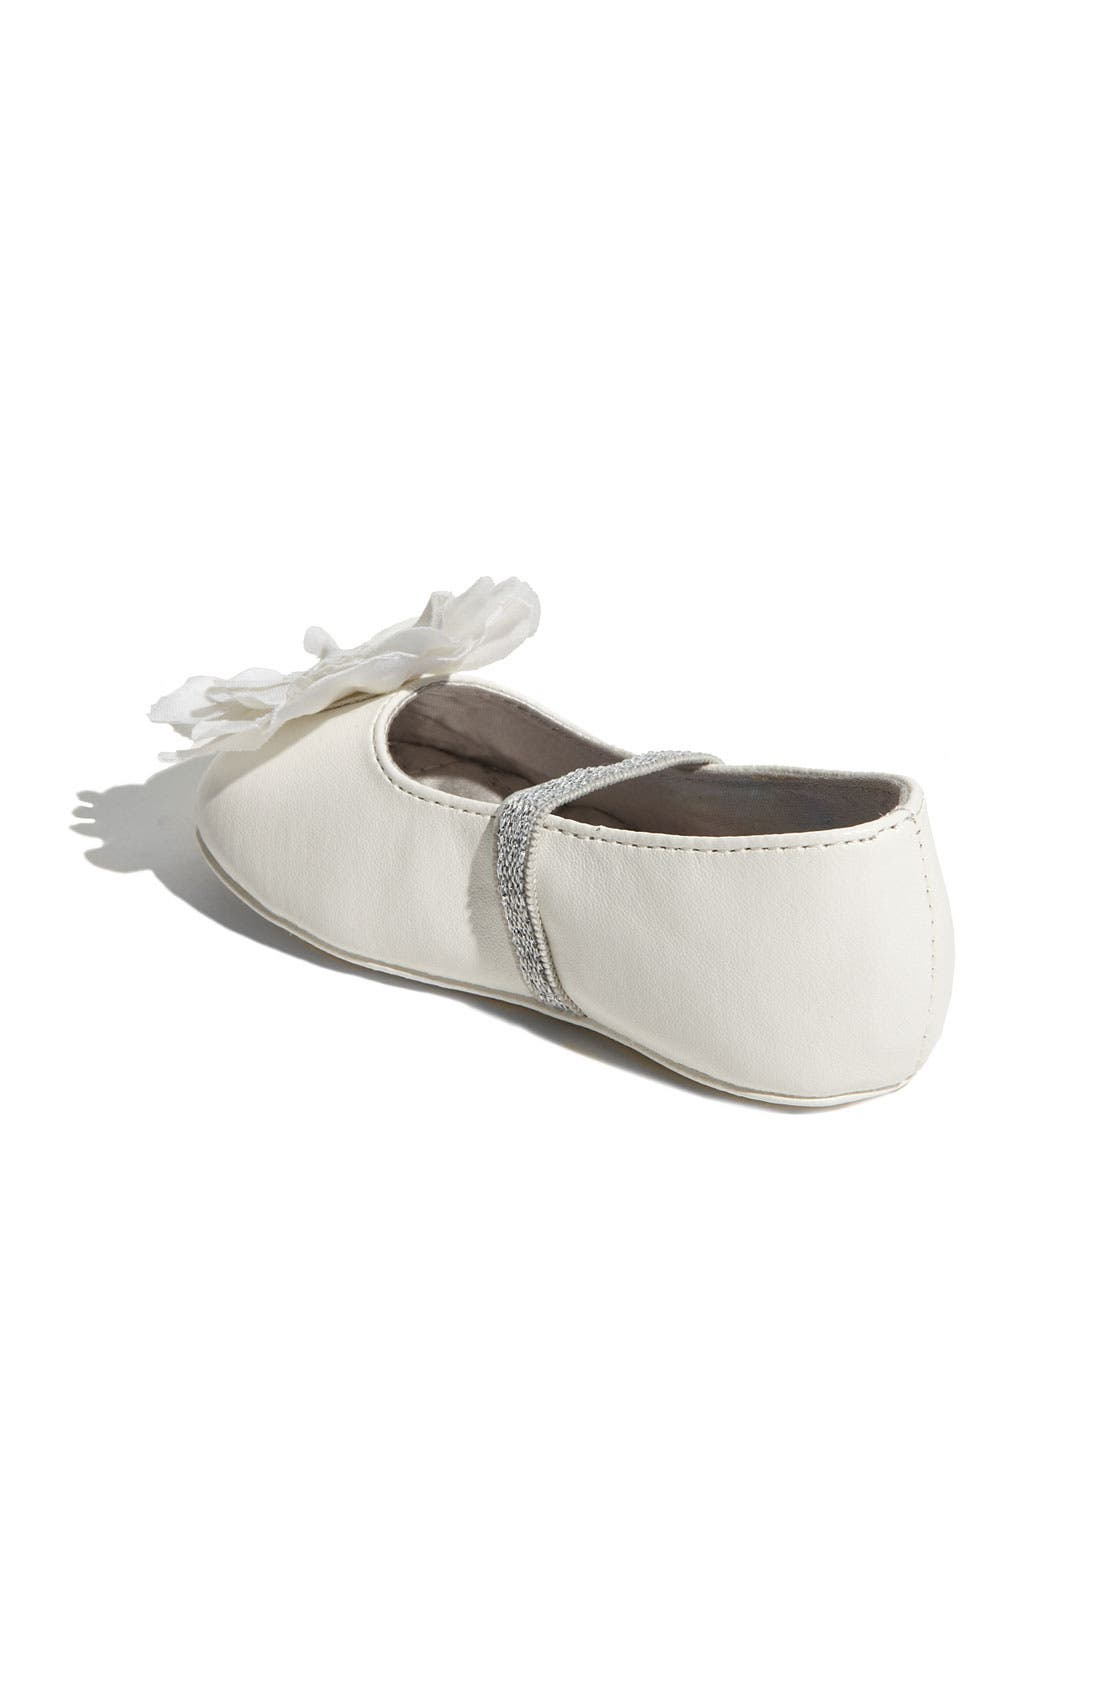 'Baby Bud' Crib Shoe,                             Alternate thumbnail 2, color,                             White